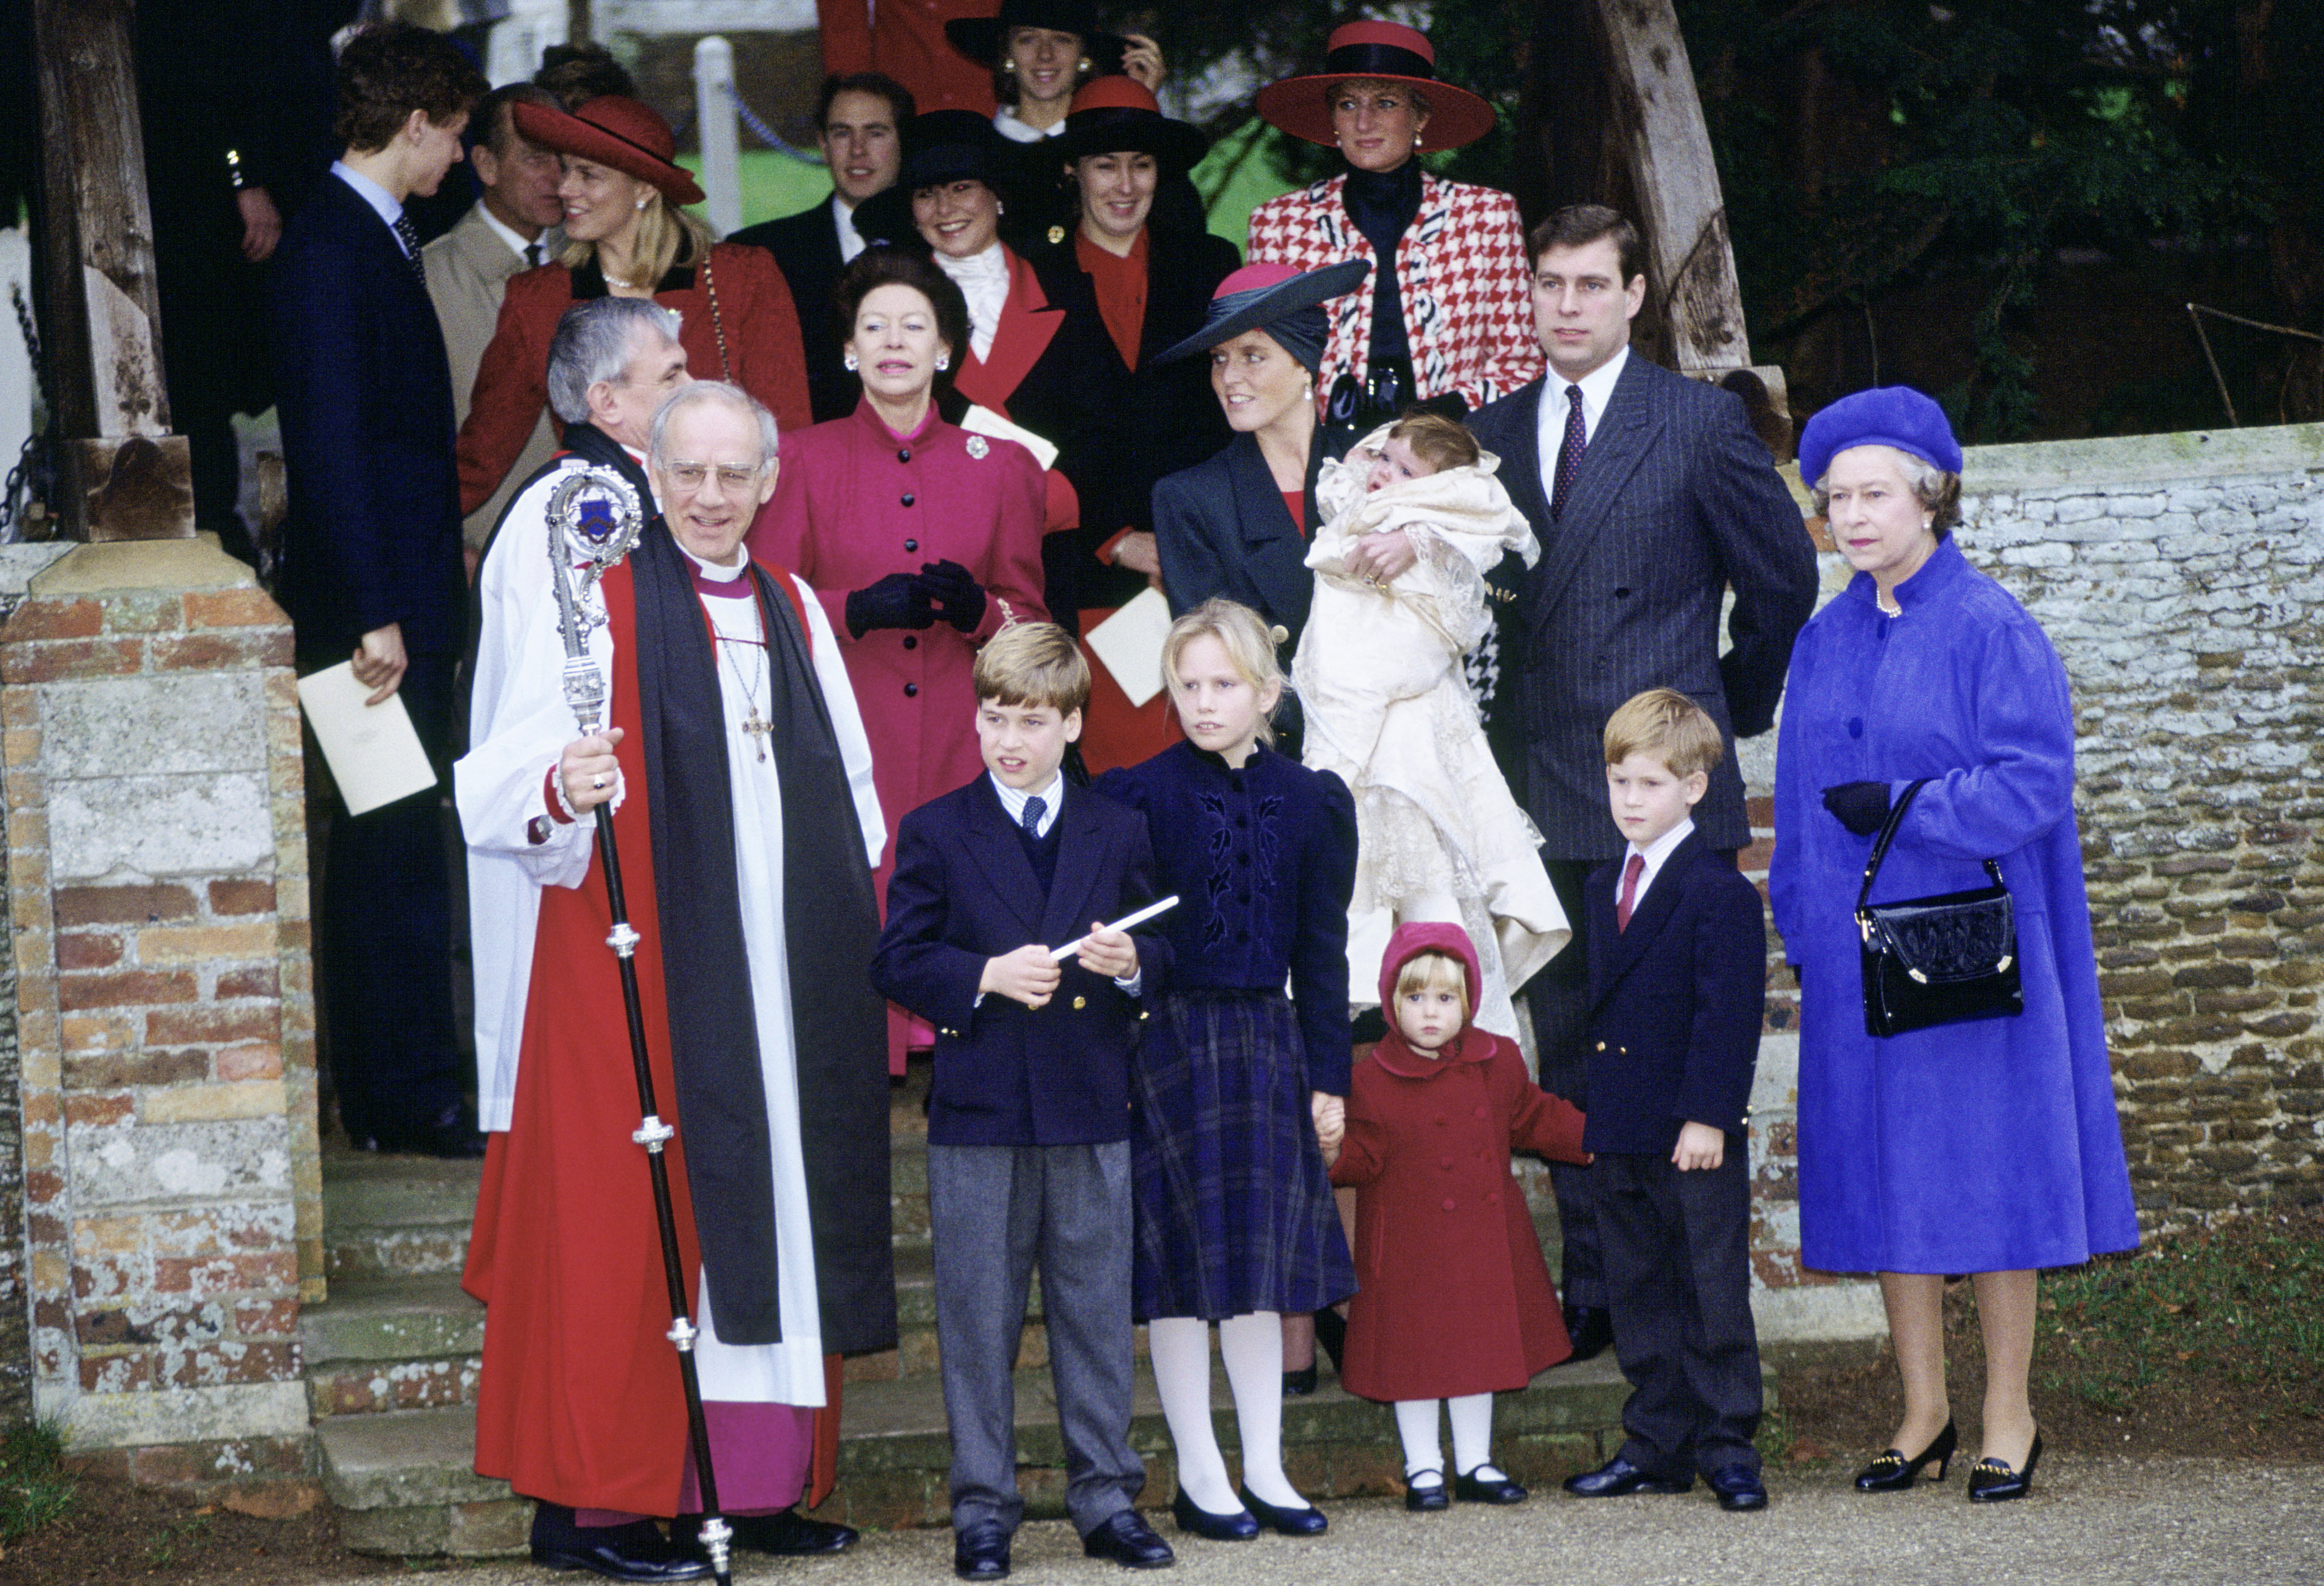 The Royal Family gather at Sandringham for Princess Eugenie's christening in December 1990 [Photo: Getty]